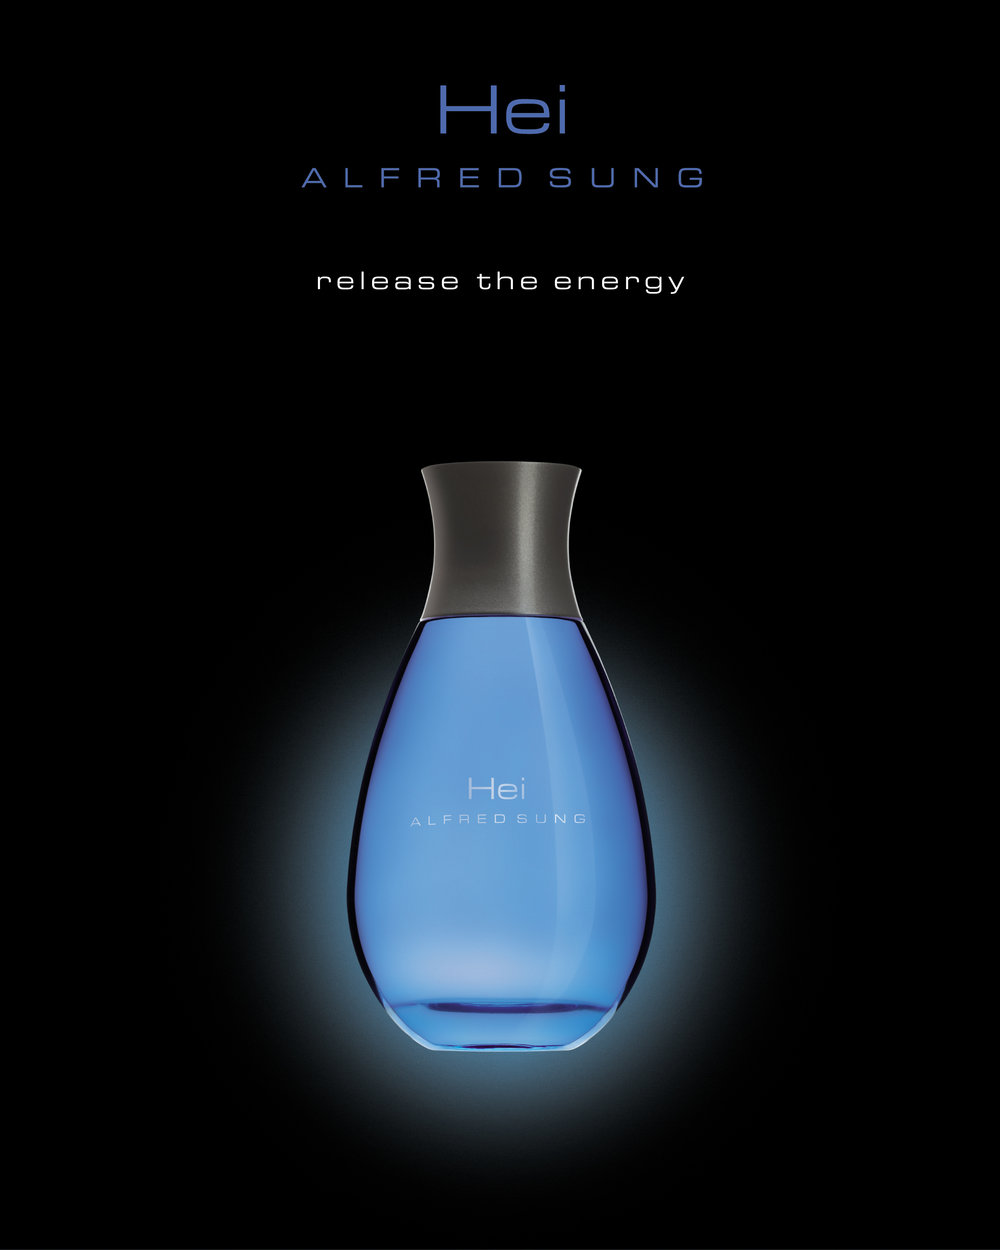 """The original ad image for HEI ALFRED SUNG. """"release the energy"""""""